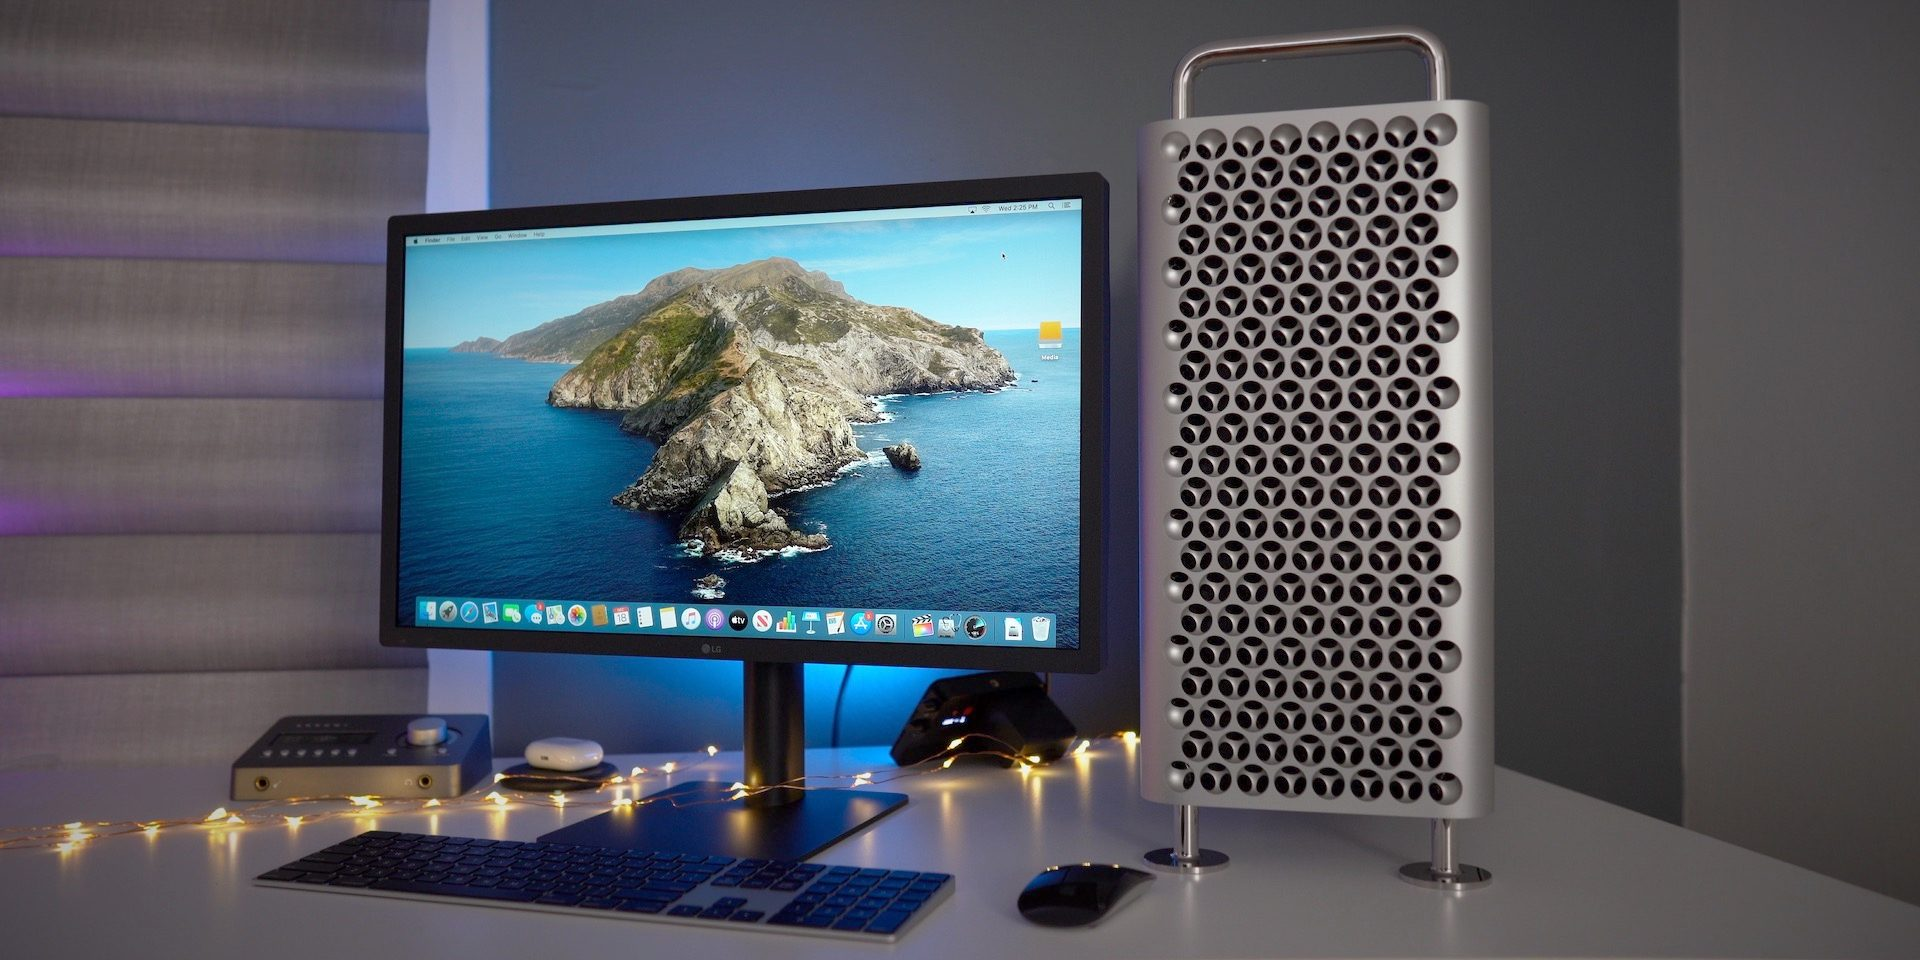 Apple Silicon iMac, MacBook Pro, and more in the works ...